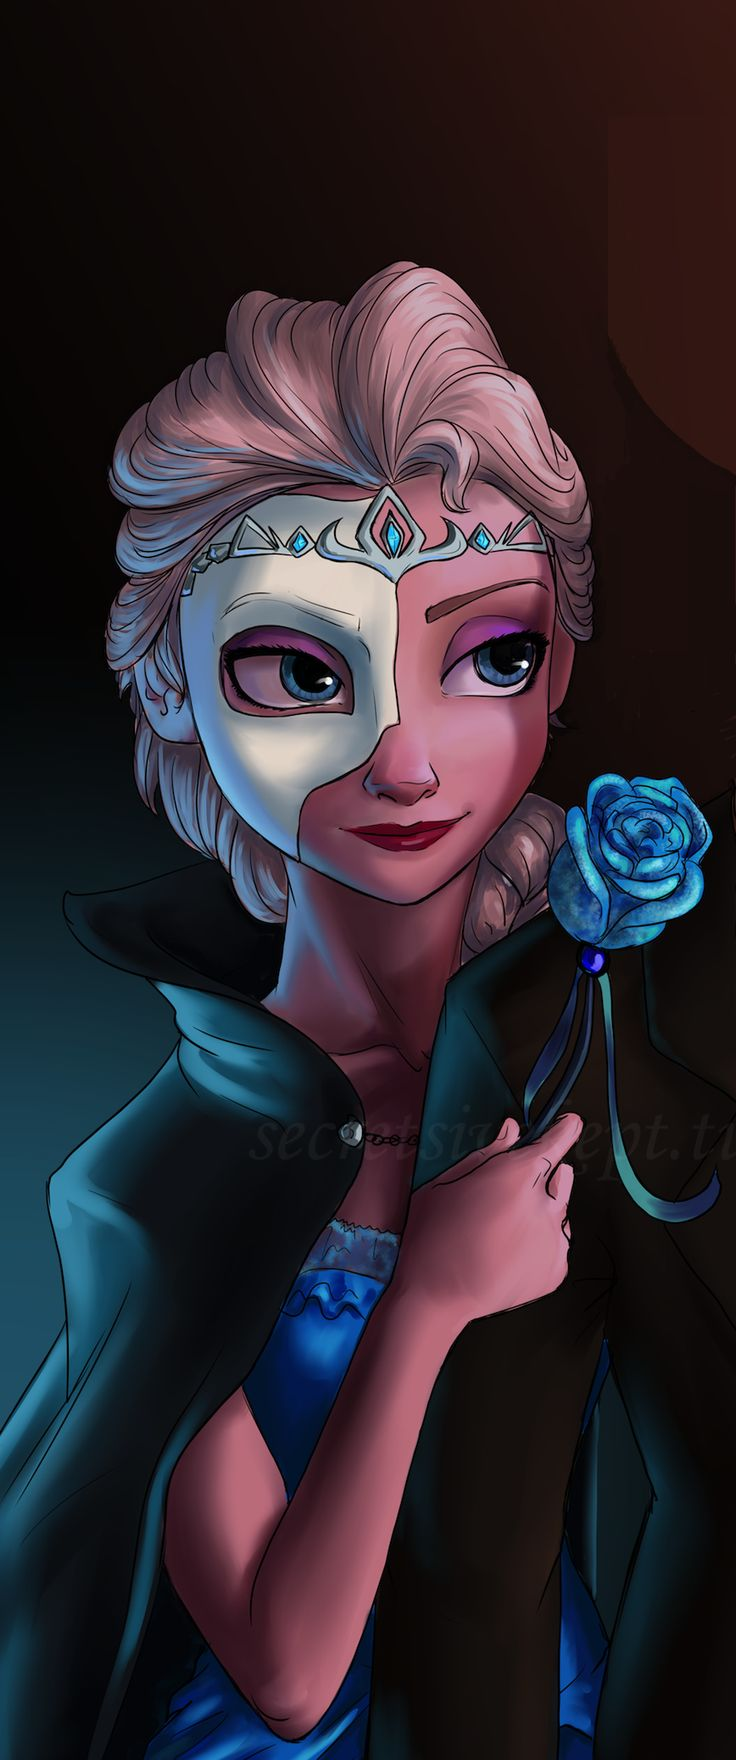 Elsa plays Phantom of the Opera                                                                                                                                                     Más